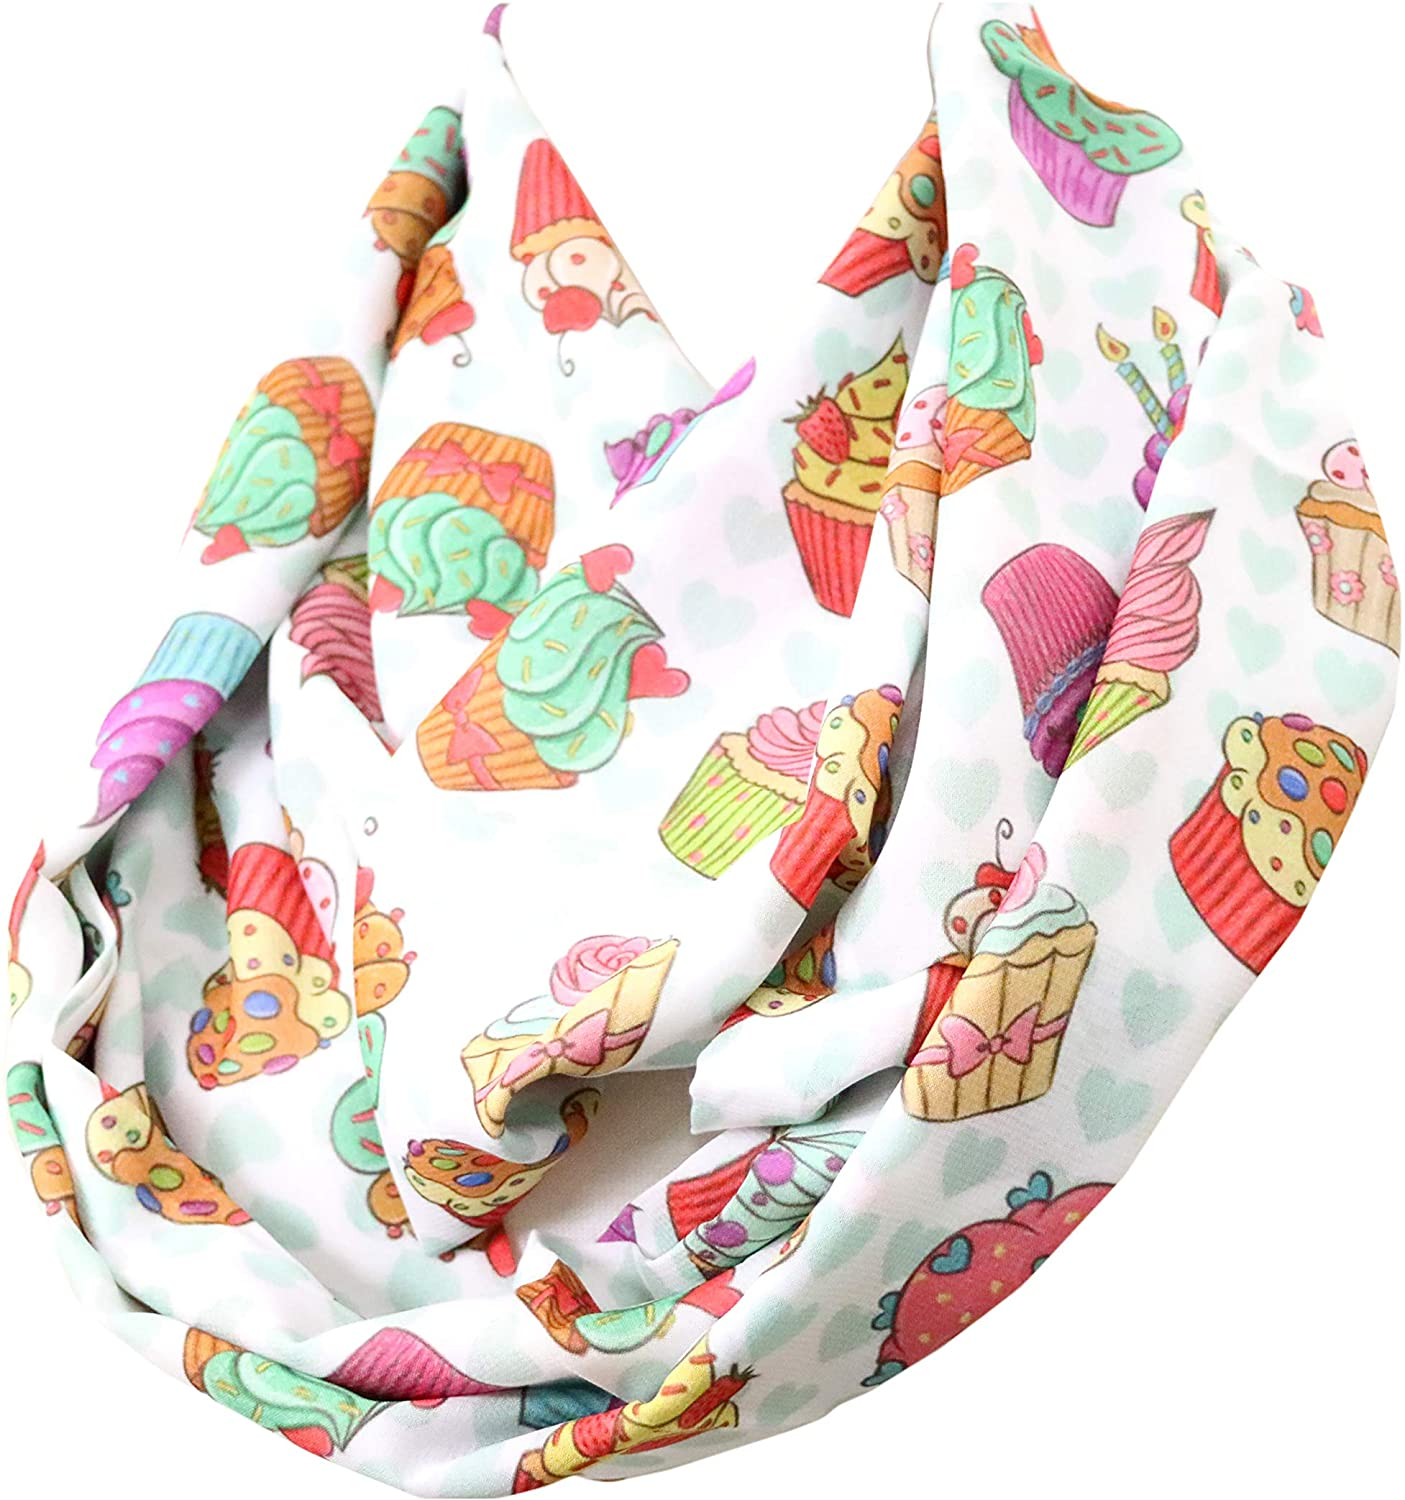 DiCapanni's cupcake infinity scarf muffin white colorful scarf birthday gift for her for baker chef outfit clothing cake decorator accessories women cupcake paper muffin cake decorator cookware wrap